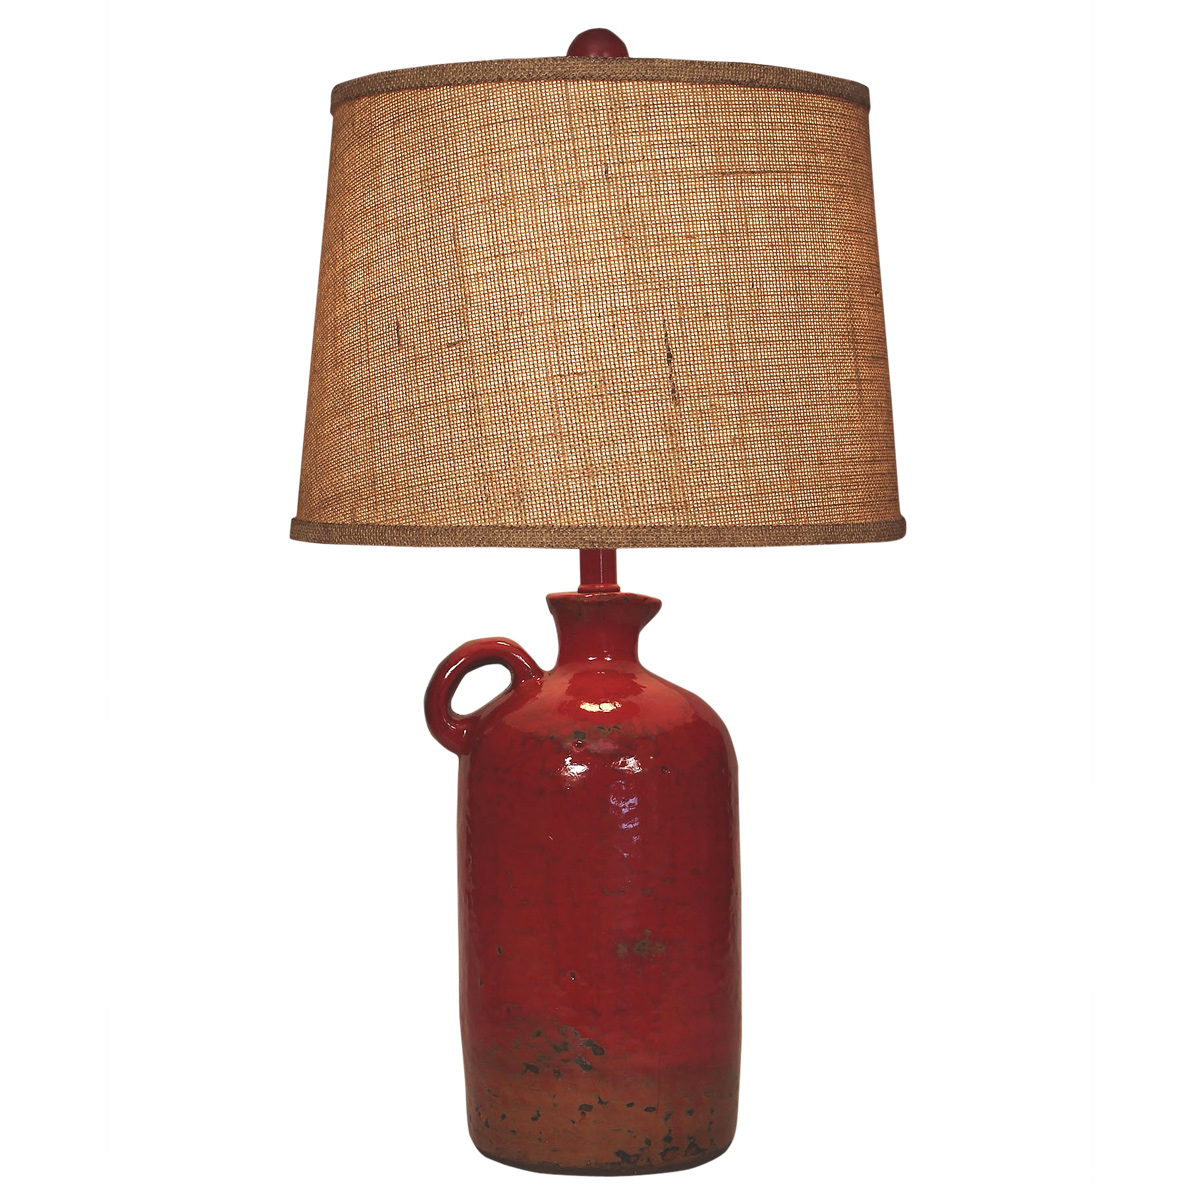 Firebrick Handled Jug Table Lamp